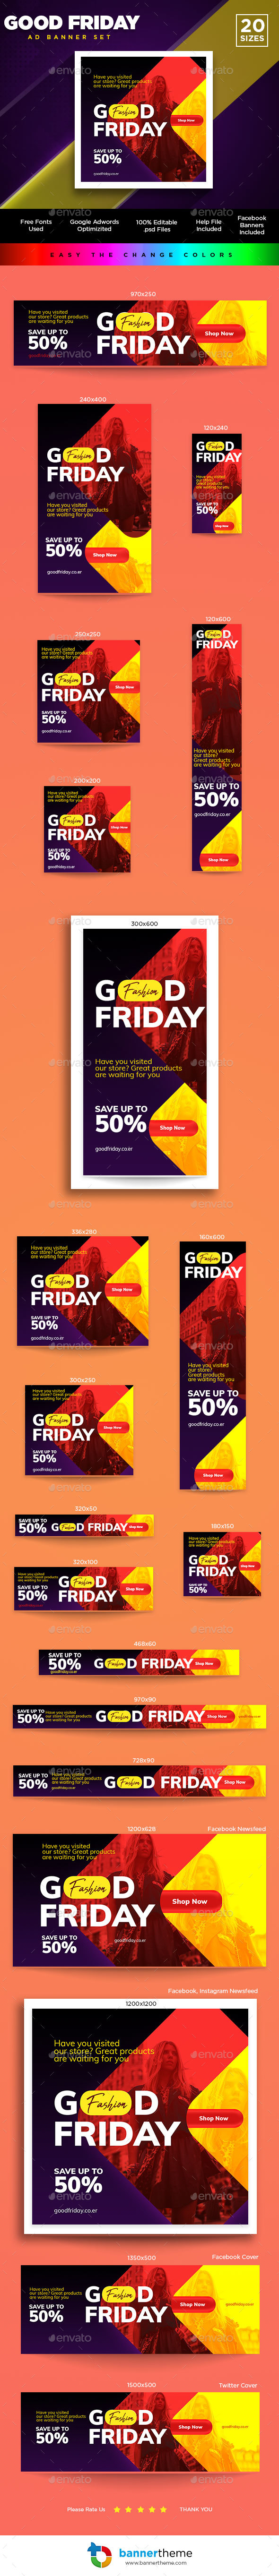 Good Friday Banner - Banners & Ads Web Elements